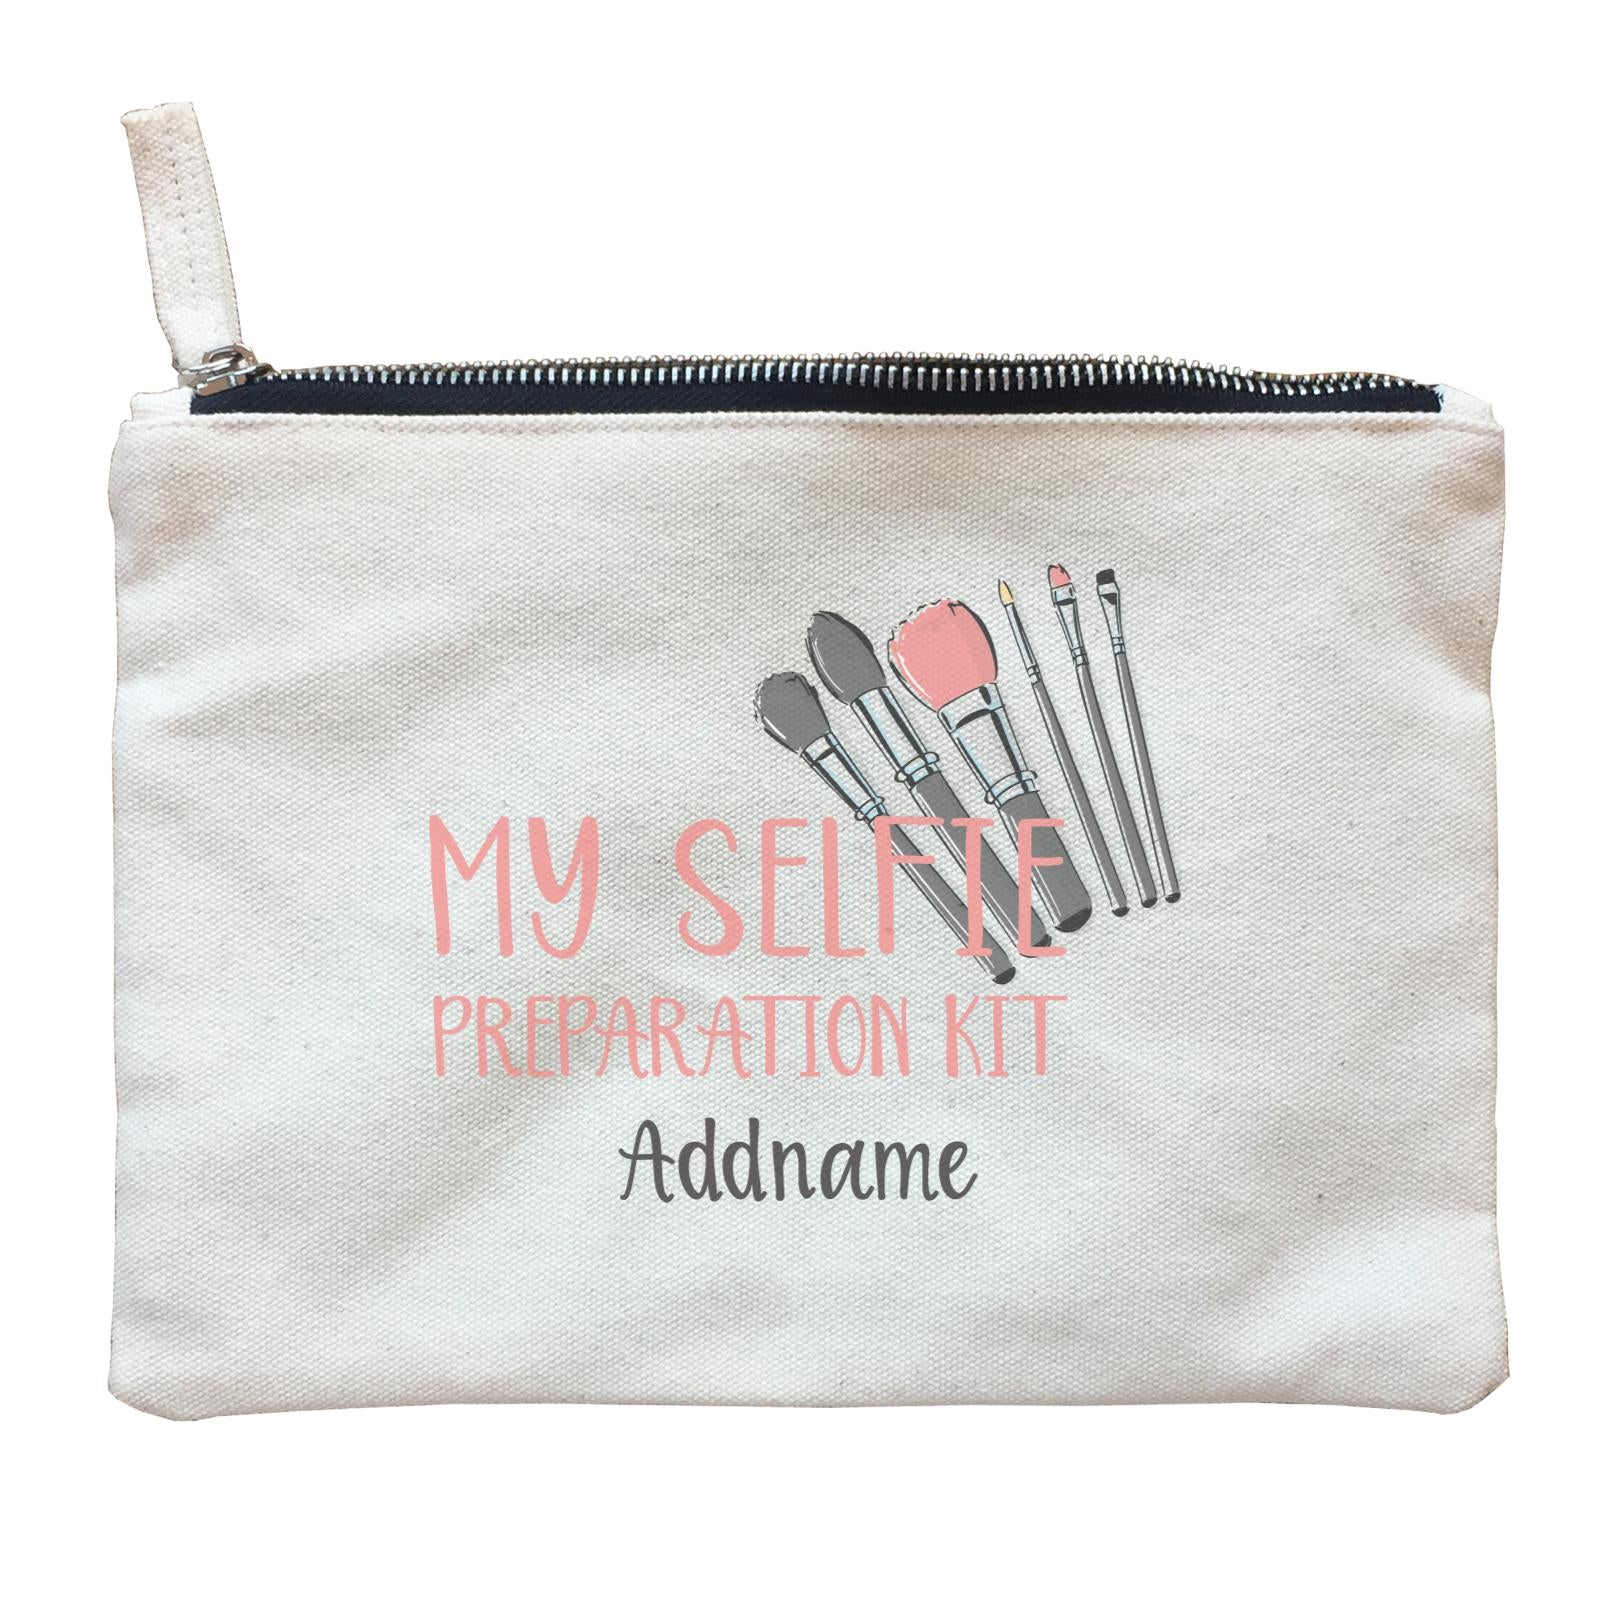 Make Up Quotes My Selfie Preparation Kit Addname Zipper Pouch